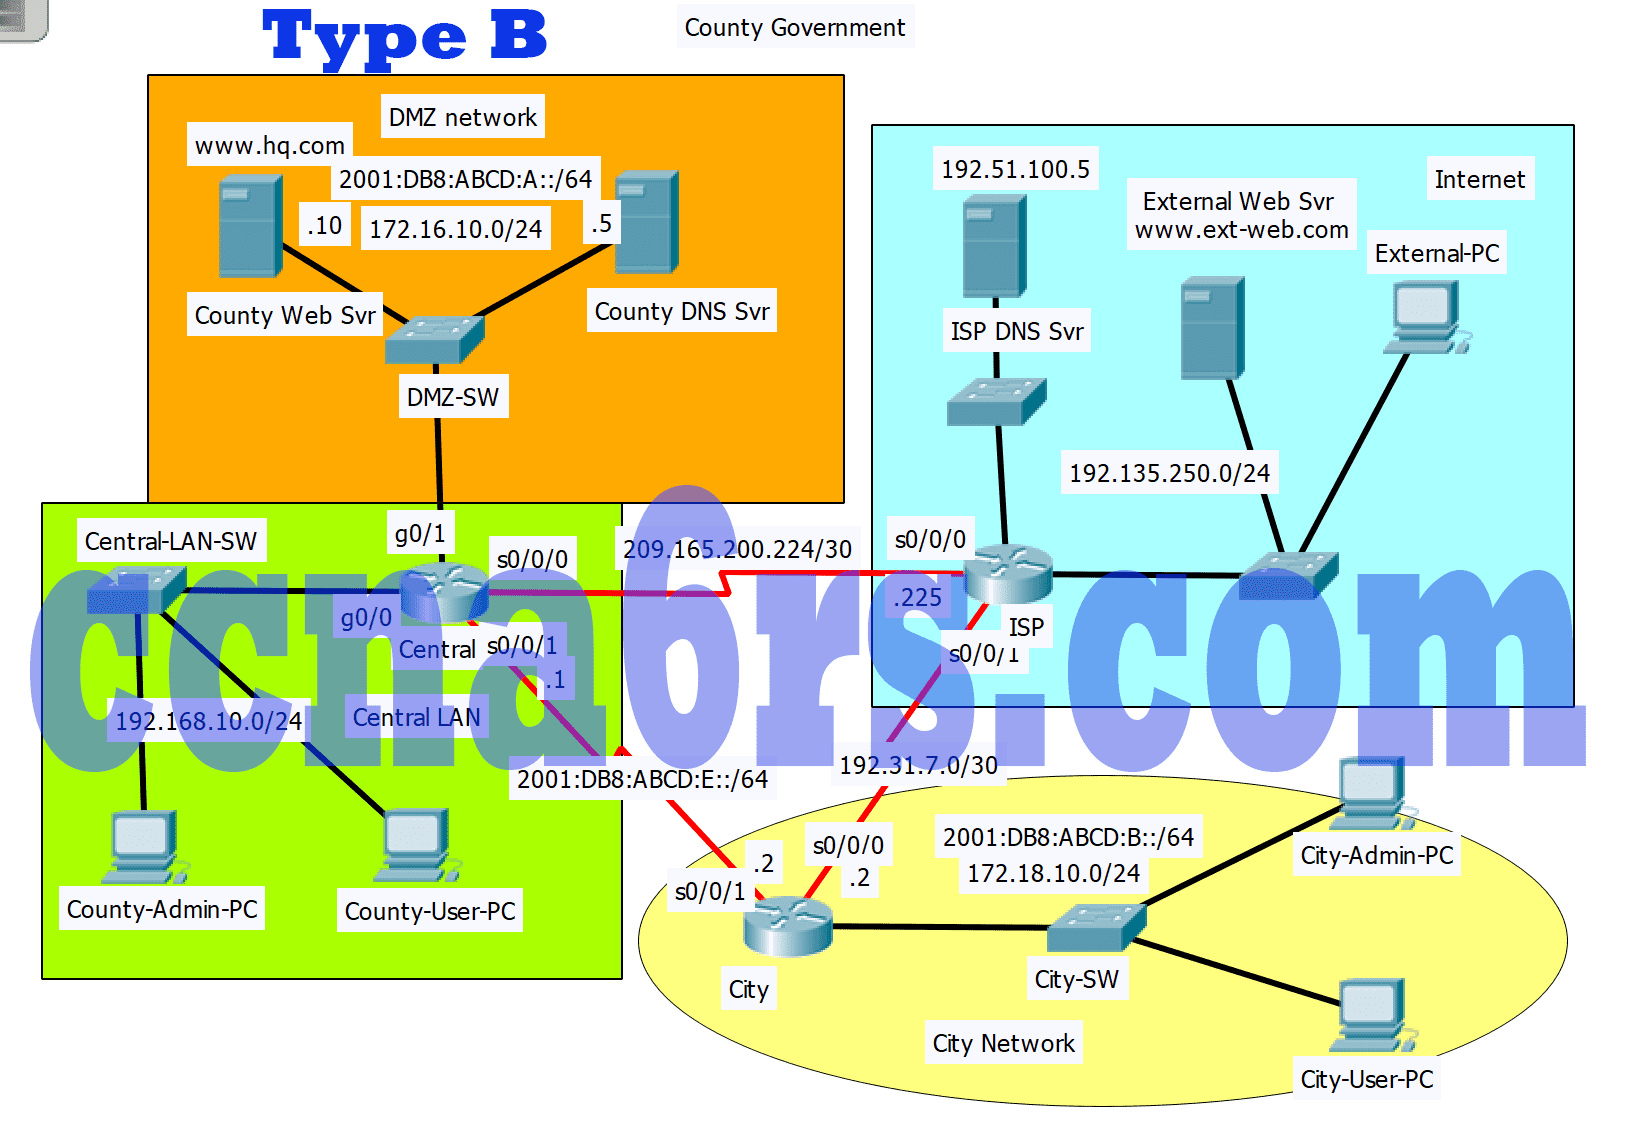 Chapter 5 Packet Tracer Skills Assessment - PT Type B